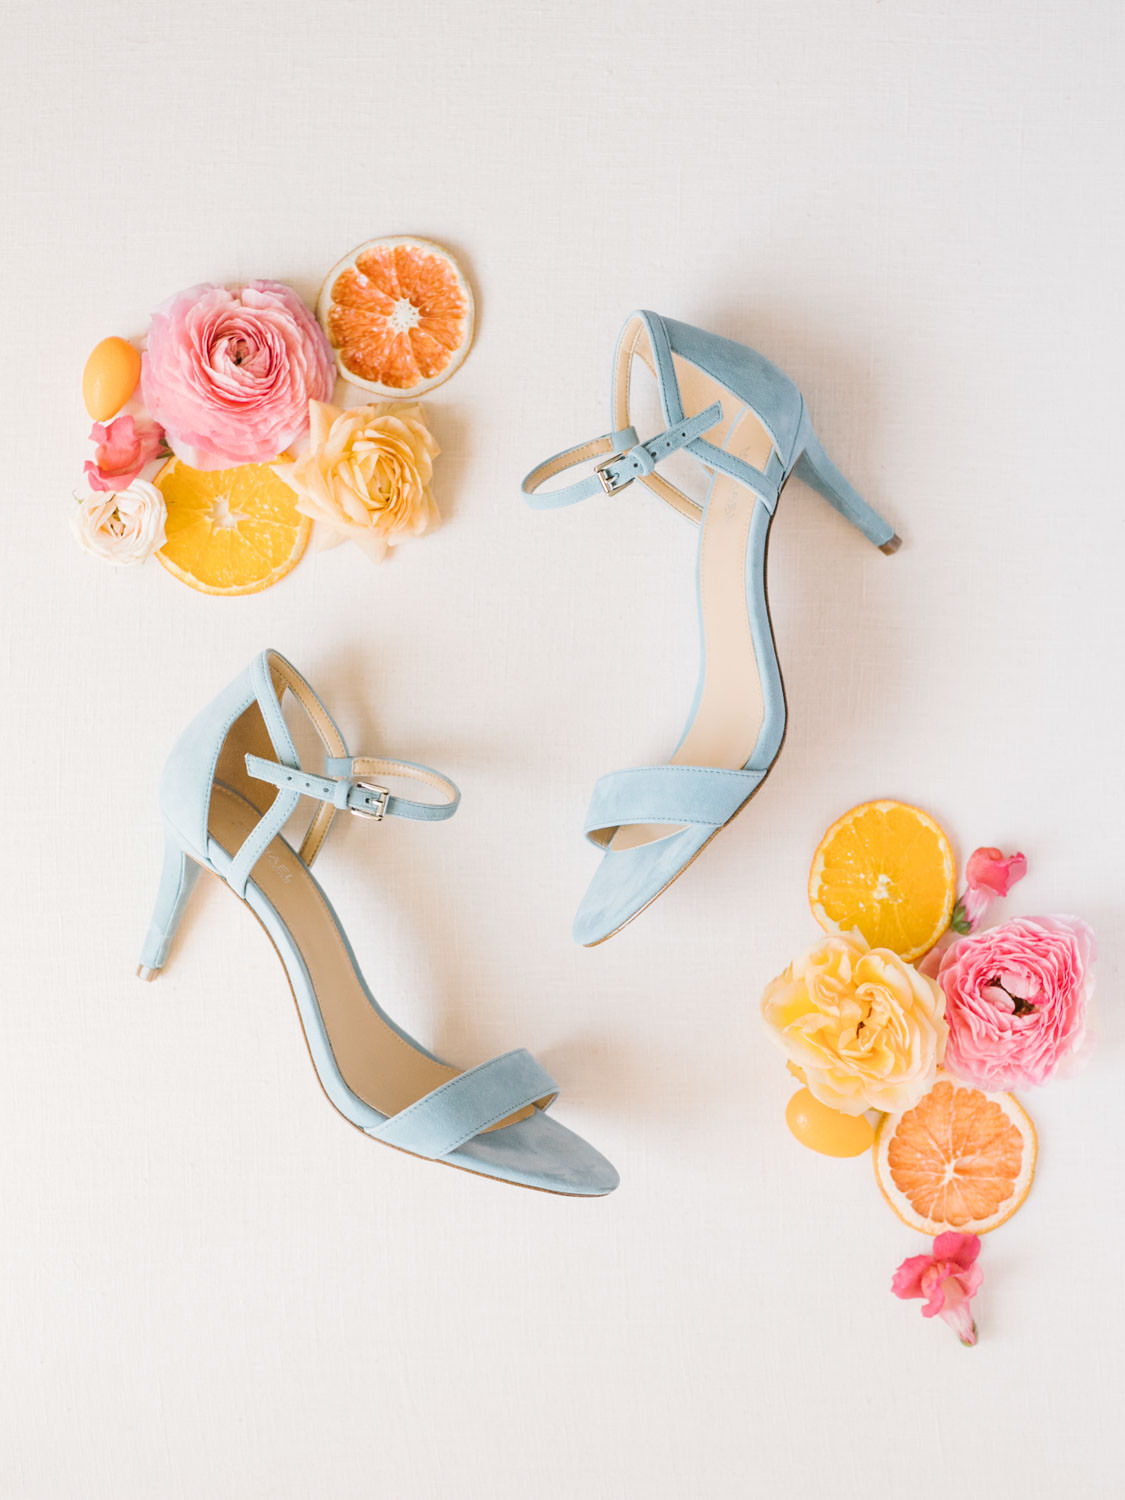 Bride's french blue velvet heels from Michael Kors styled with dried fruits, and fresh pink flowers. Fairmont Grand del Mar wedding published on Martha Stewart Weddings